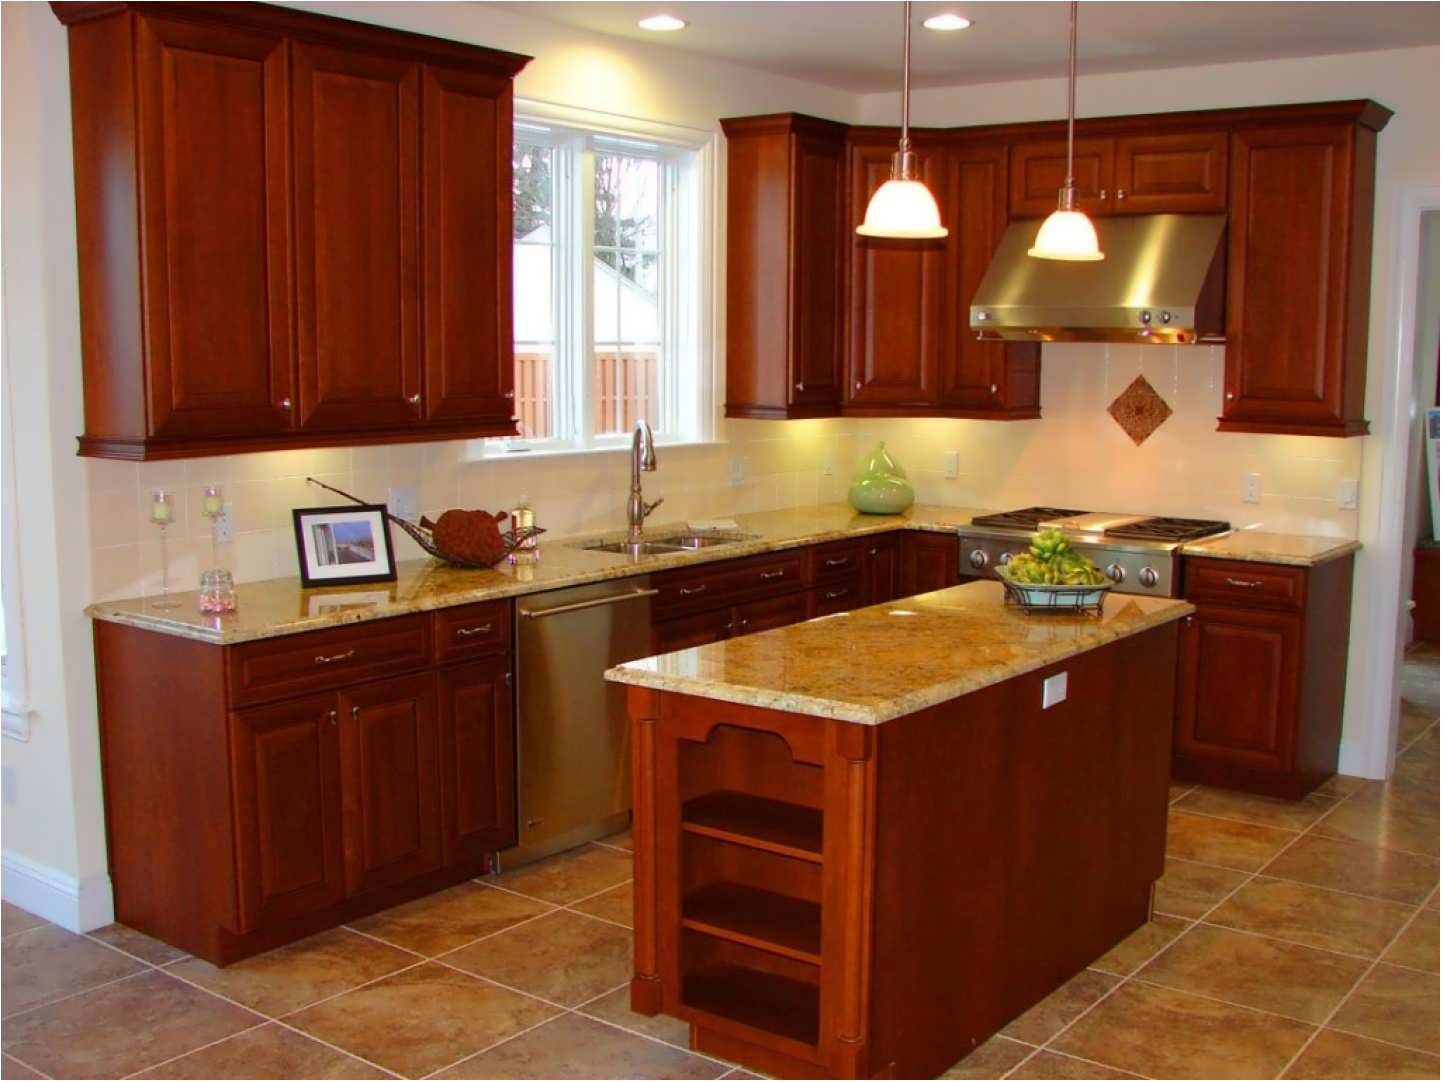 What Makes a Good KItchen Company?